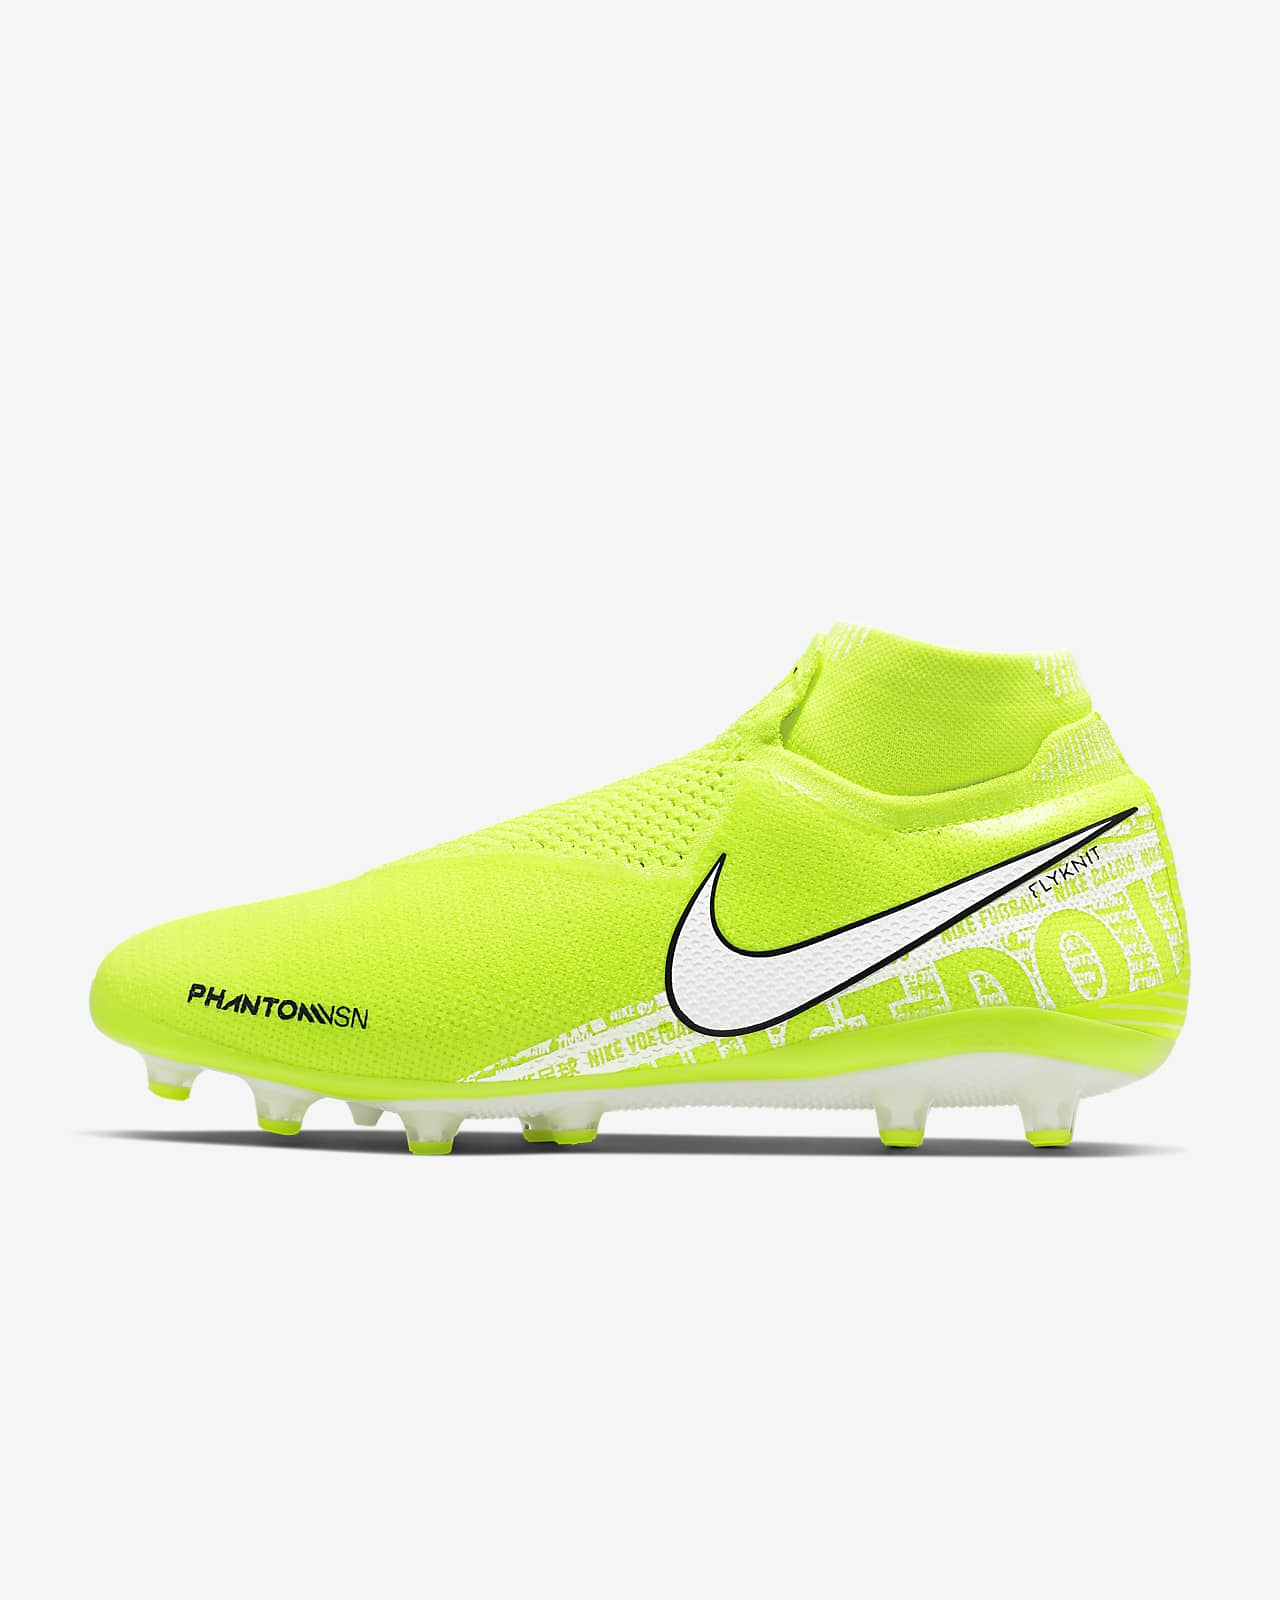 picnic vacante maldición  Nike Phantom Vision Elite Dynamic Fit Artificial-Grass Football Boot. Nike  SI